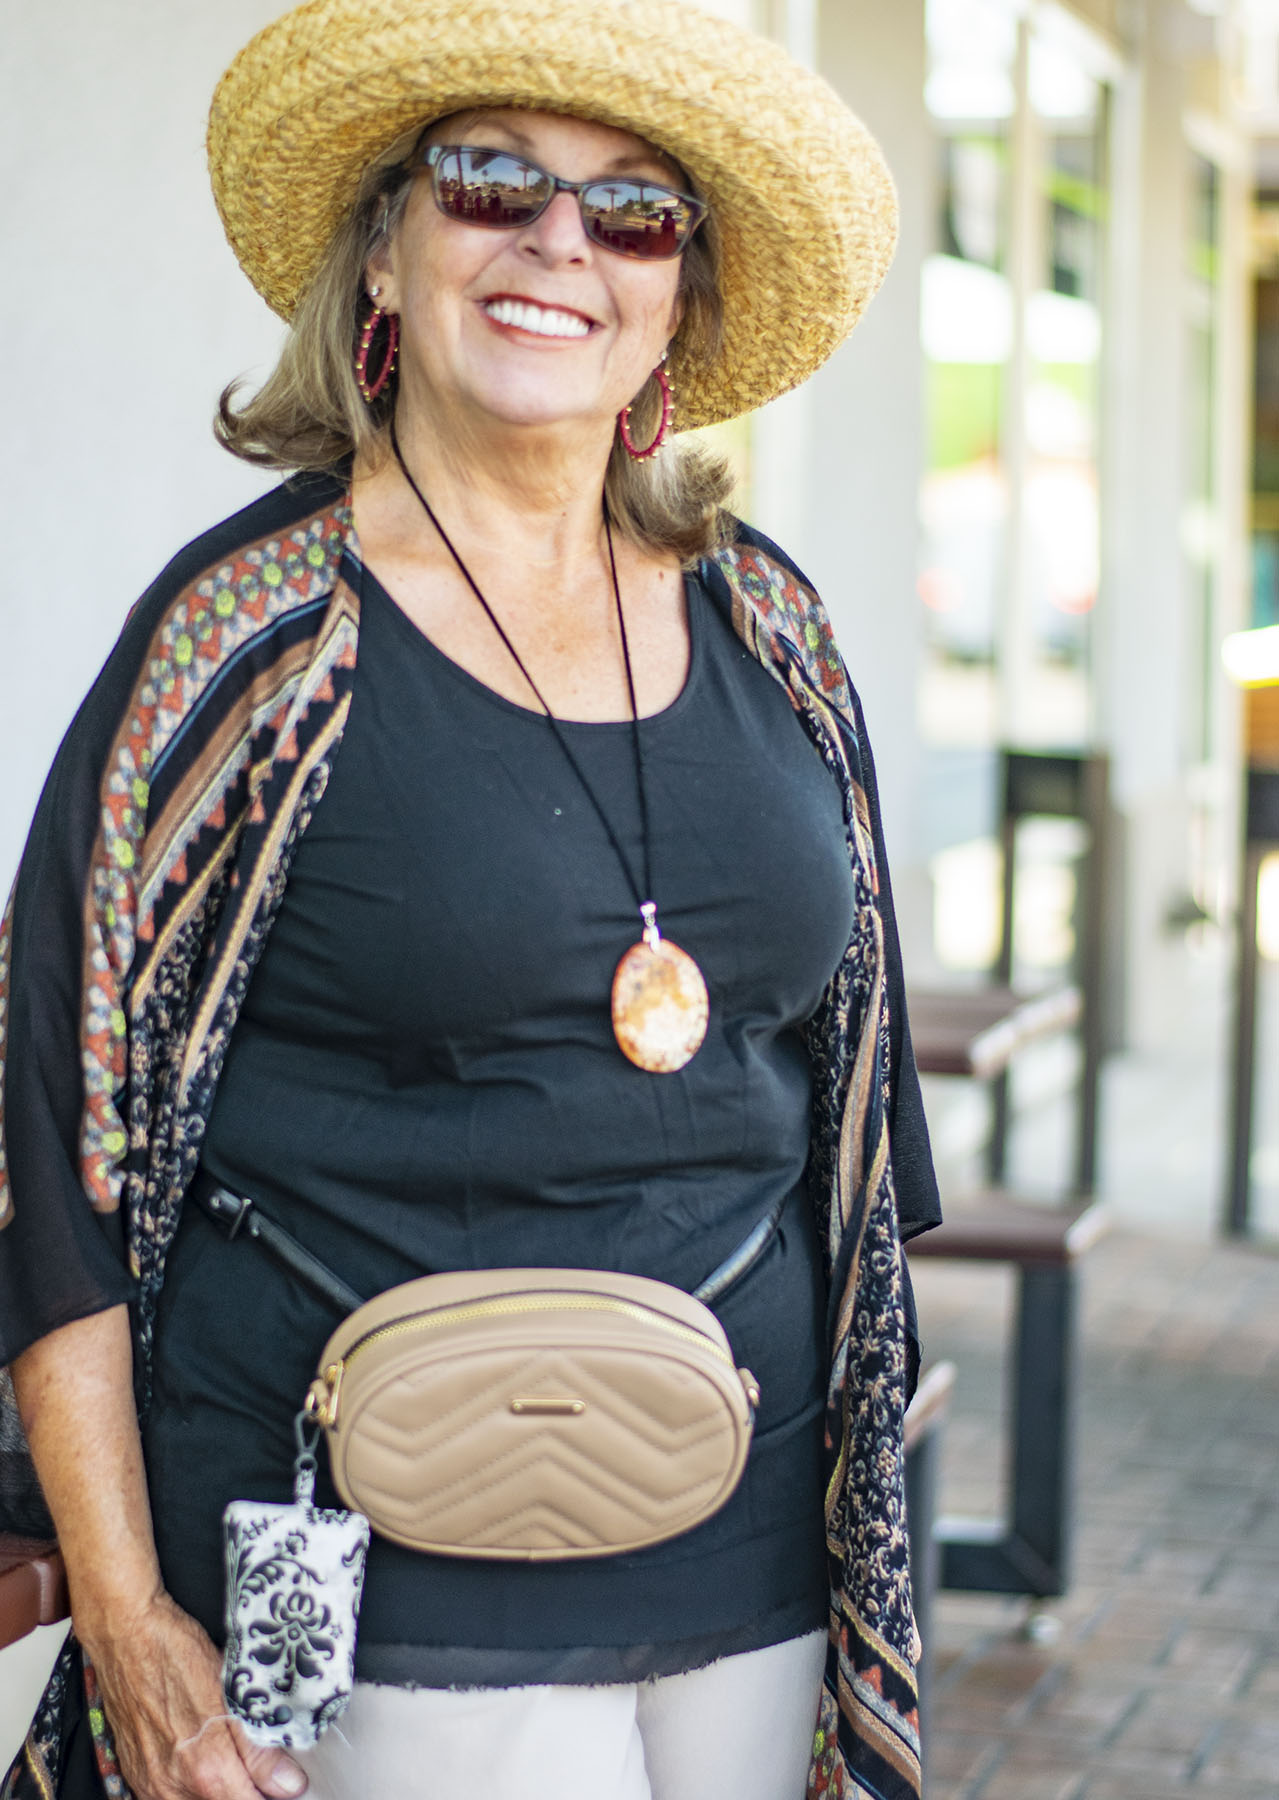 Style over 60: How to Wear Capri Pants Fashionably